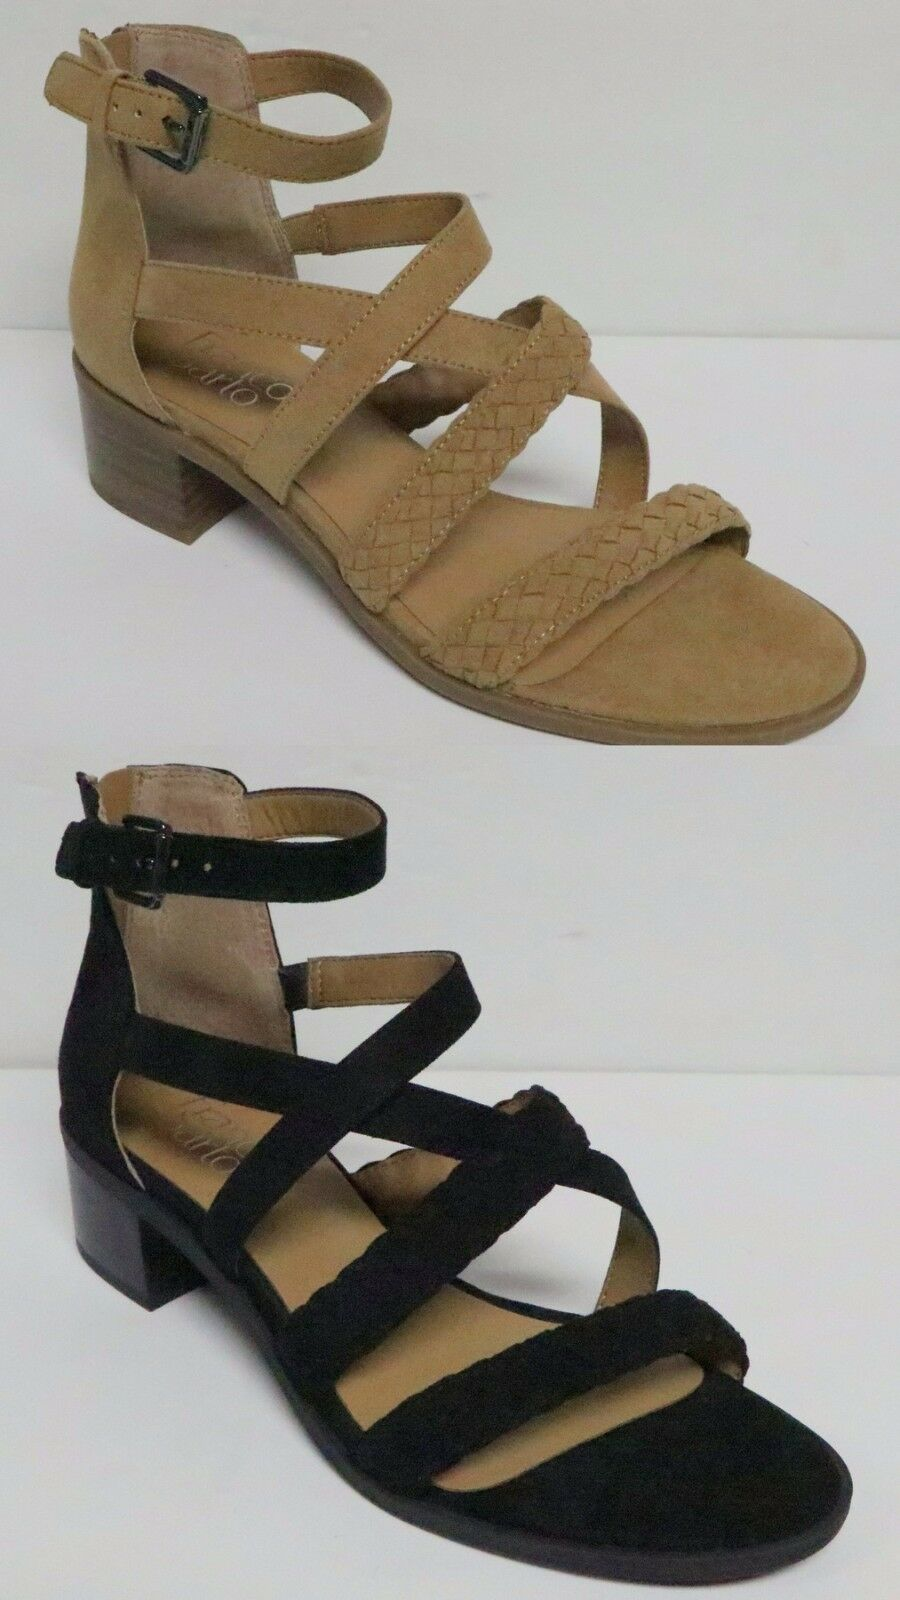 FRANCO SARTO OLYMPUS FABRIC SANDALS ANKLE WRAP BUCKLE REAR ZIP FAUX SUEDE NEW